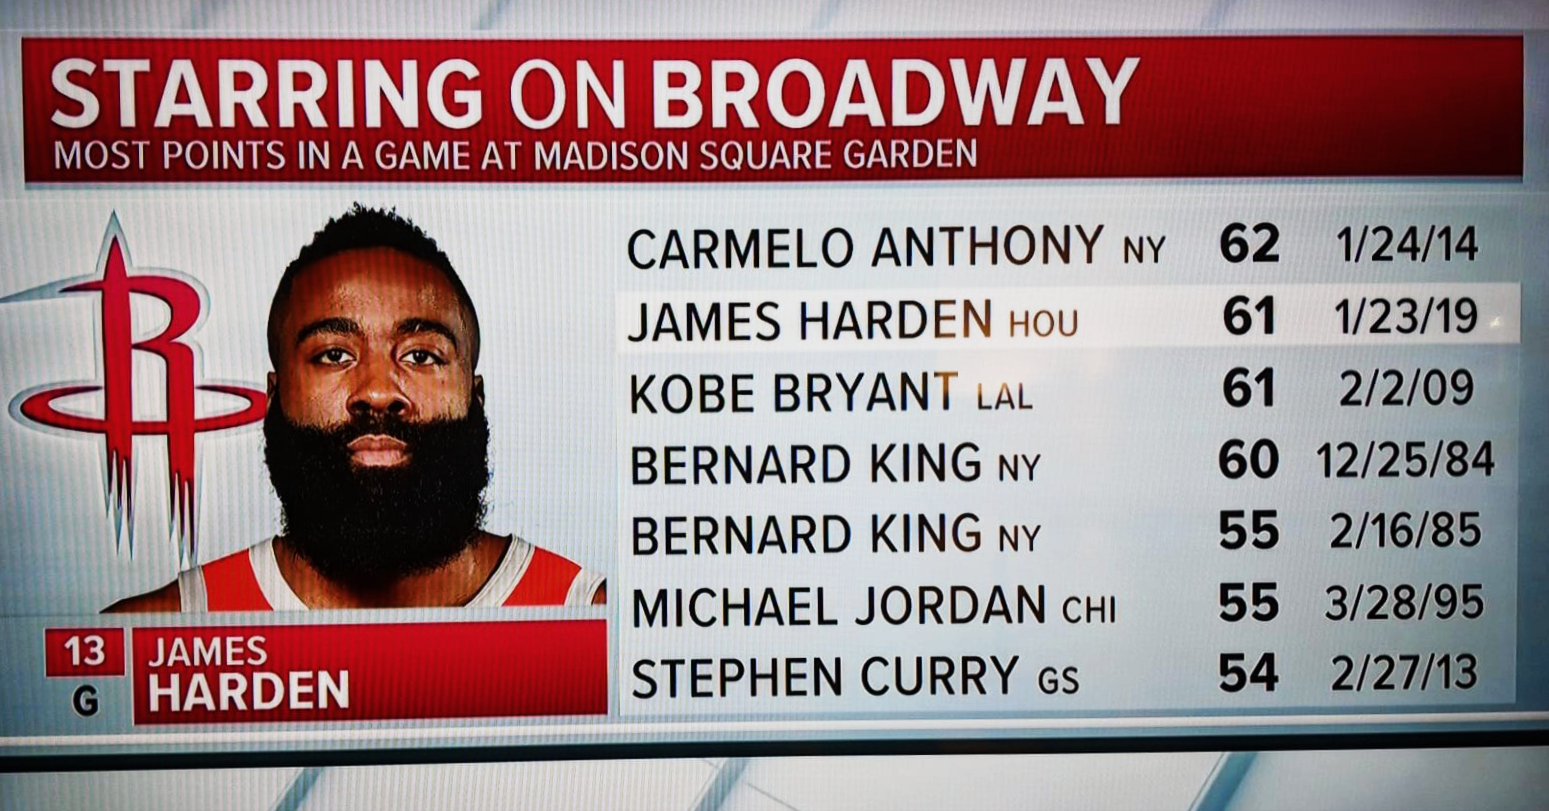 James Harden sets new career high with casual 61 points at Madison Square Garden